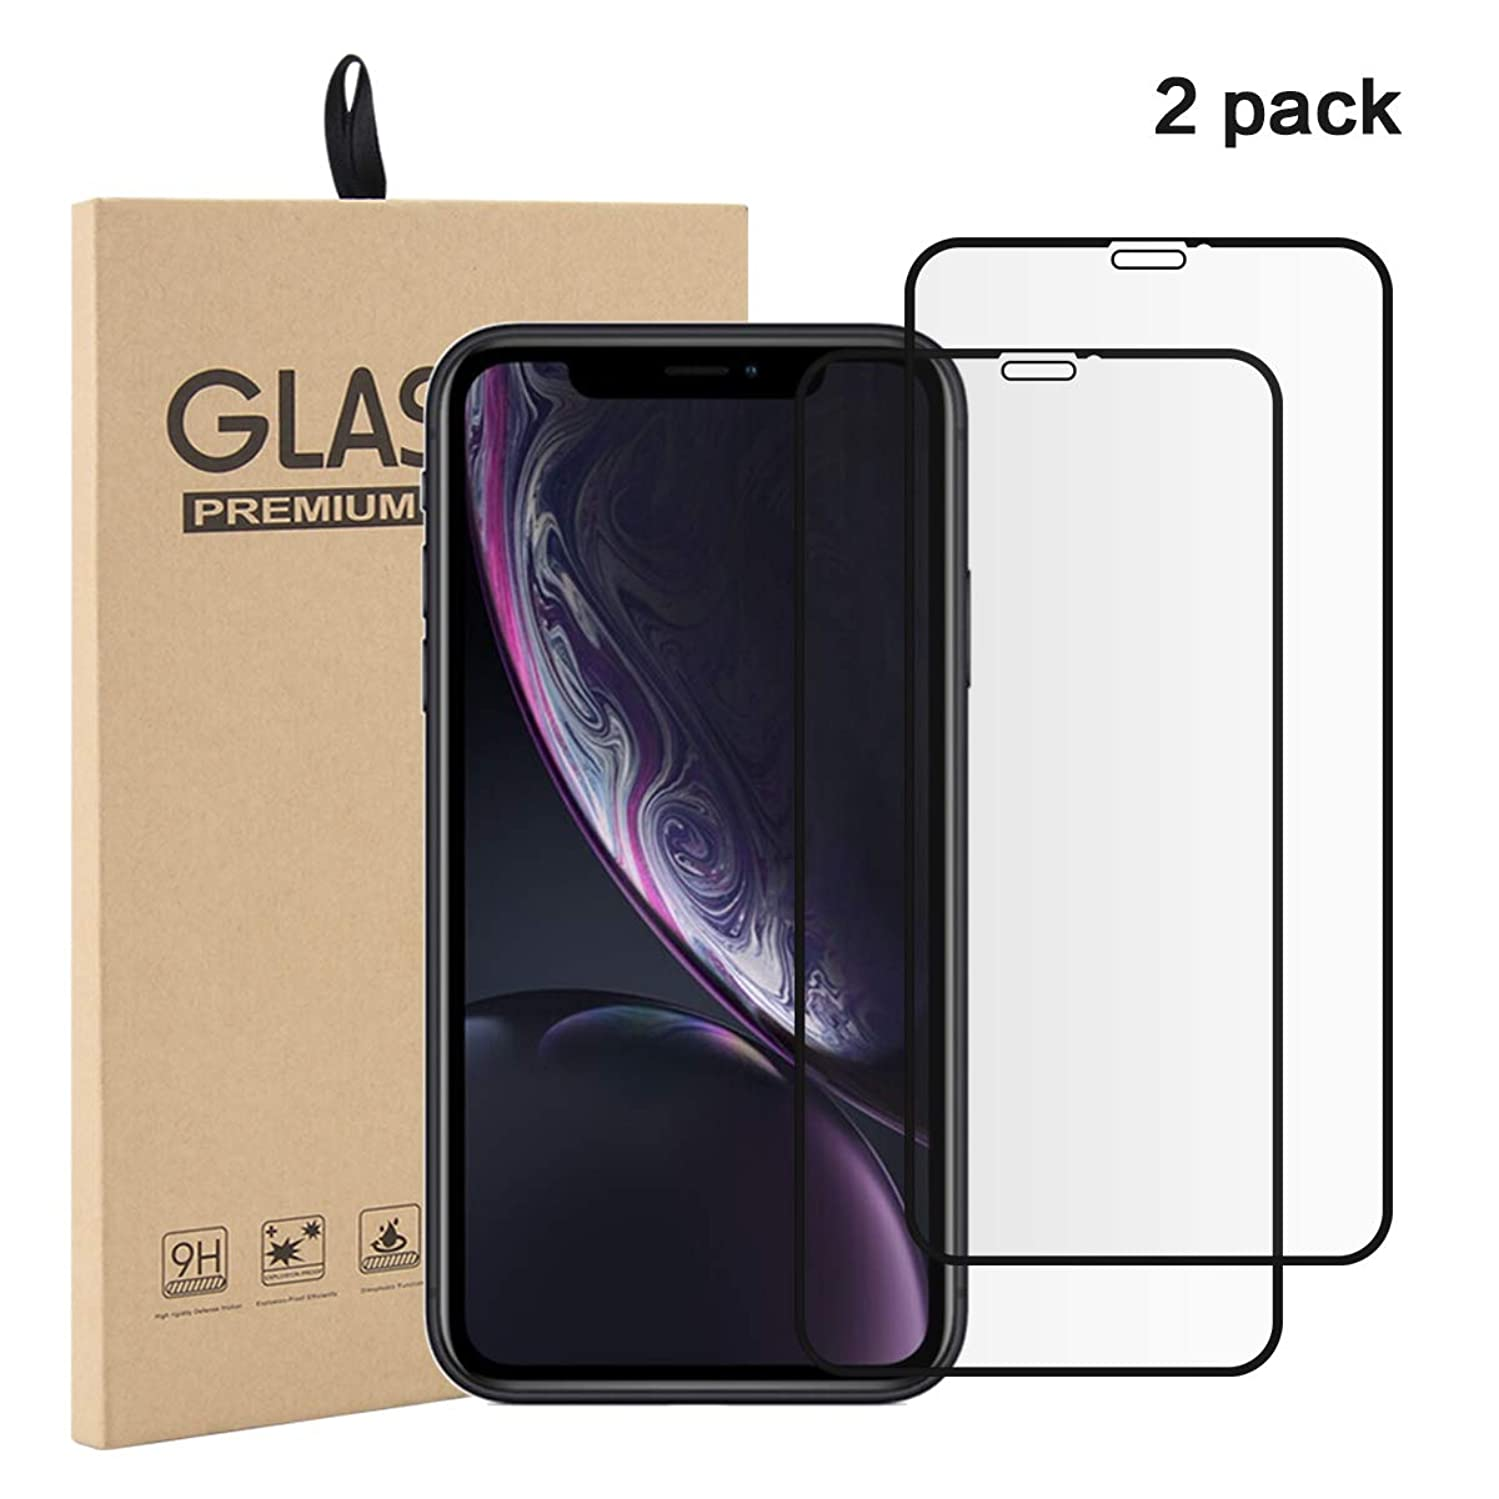 Torubia iPhone Xr Tempered Glass Screen Protector Ultra-Thin Effective Protection As Shown